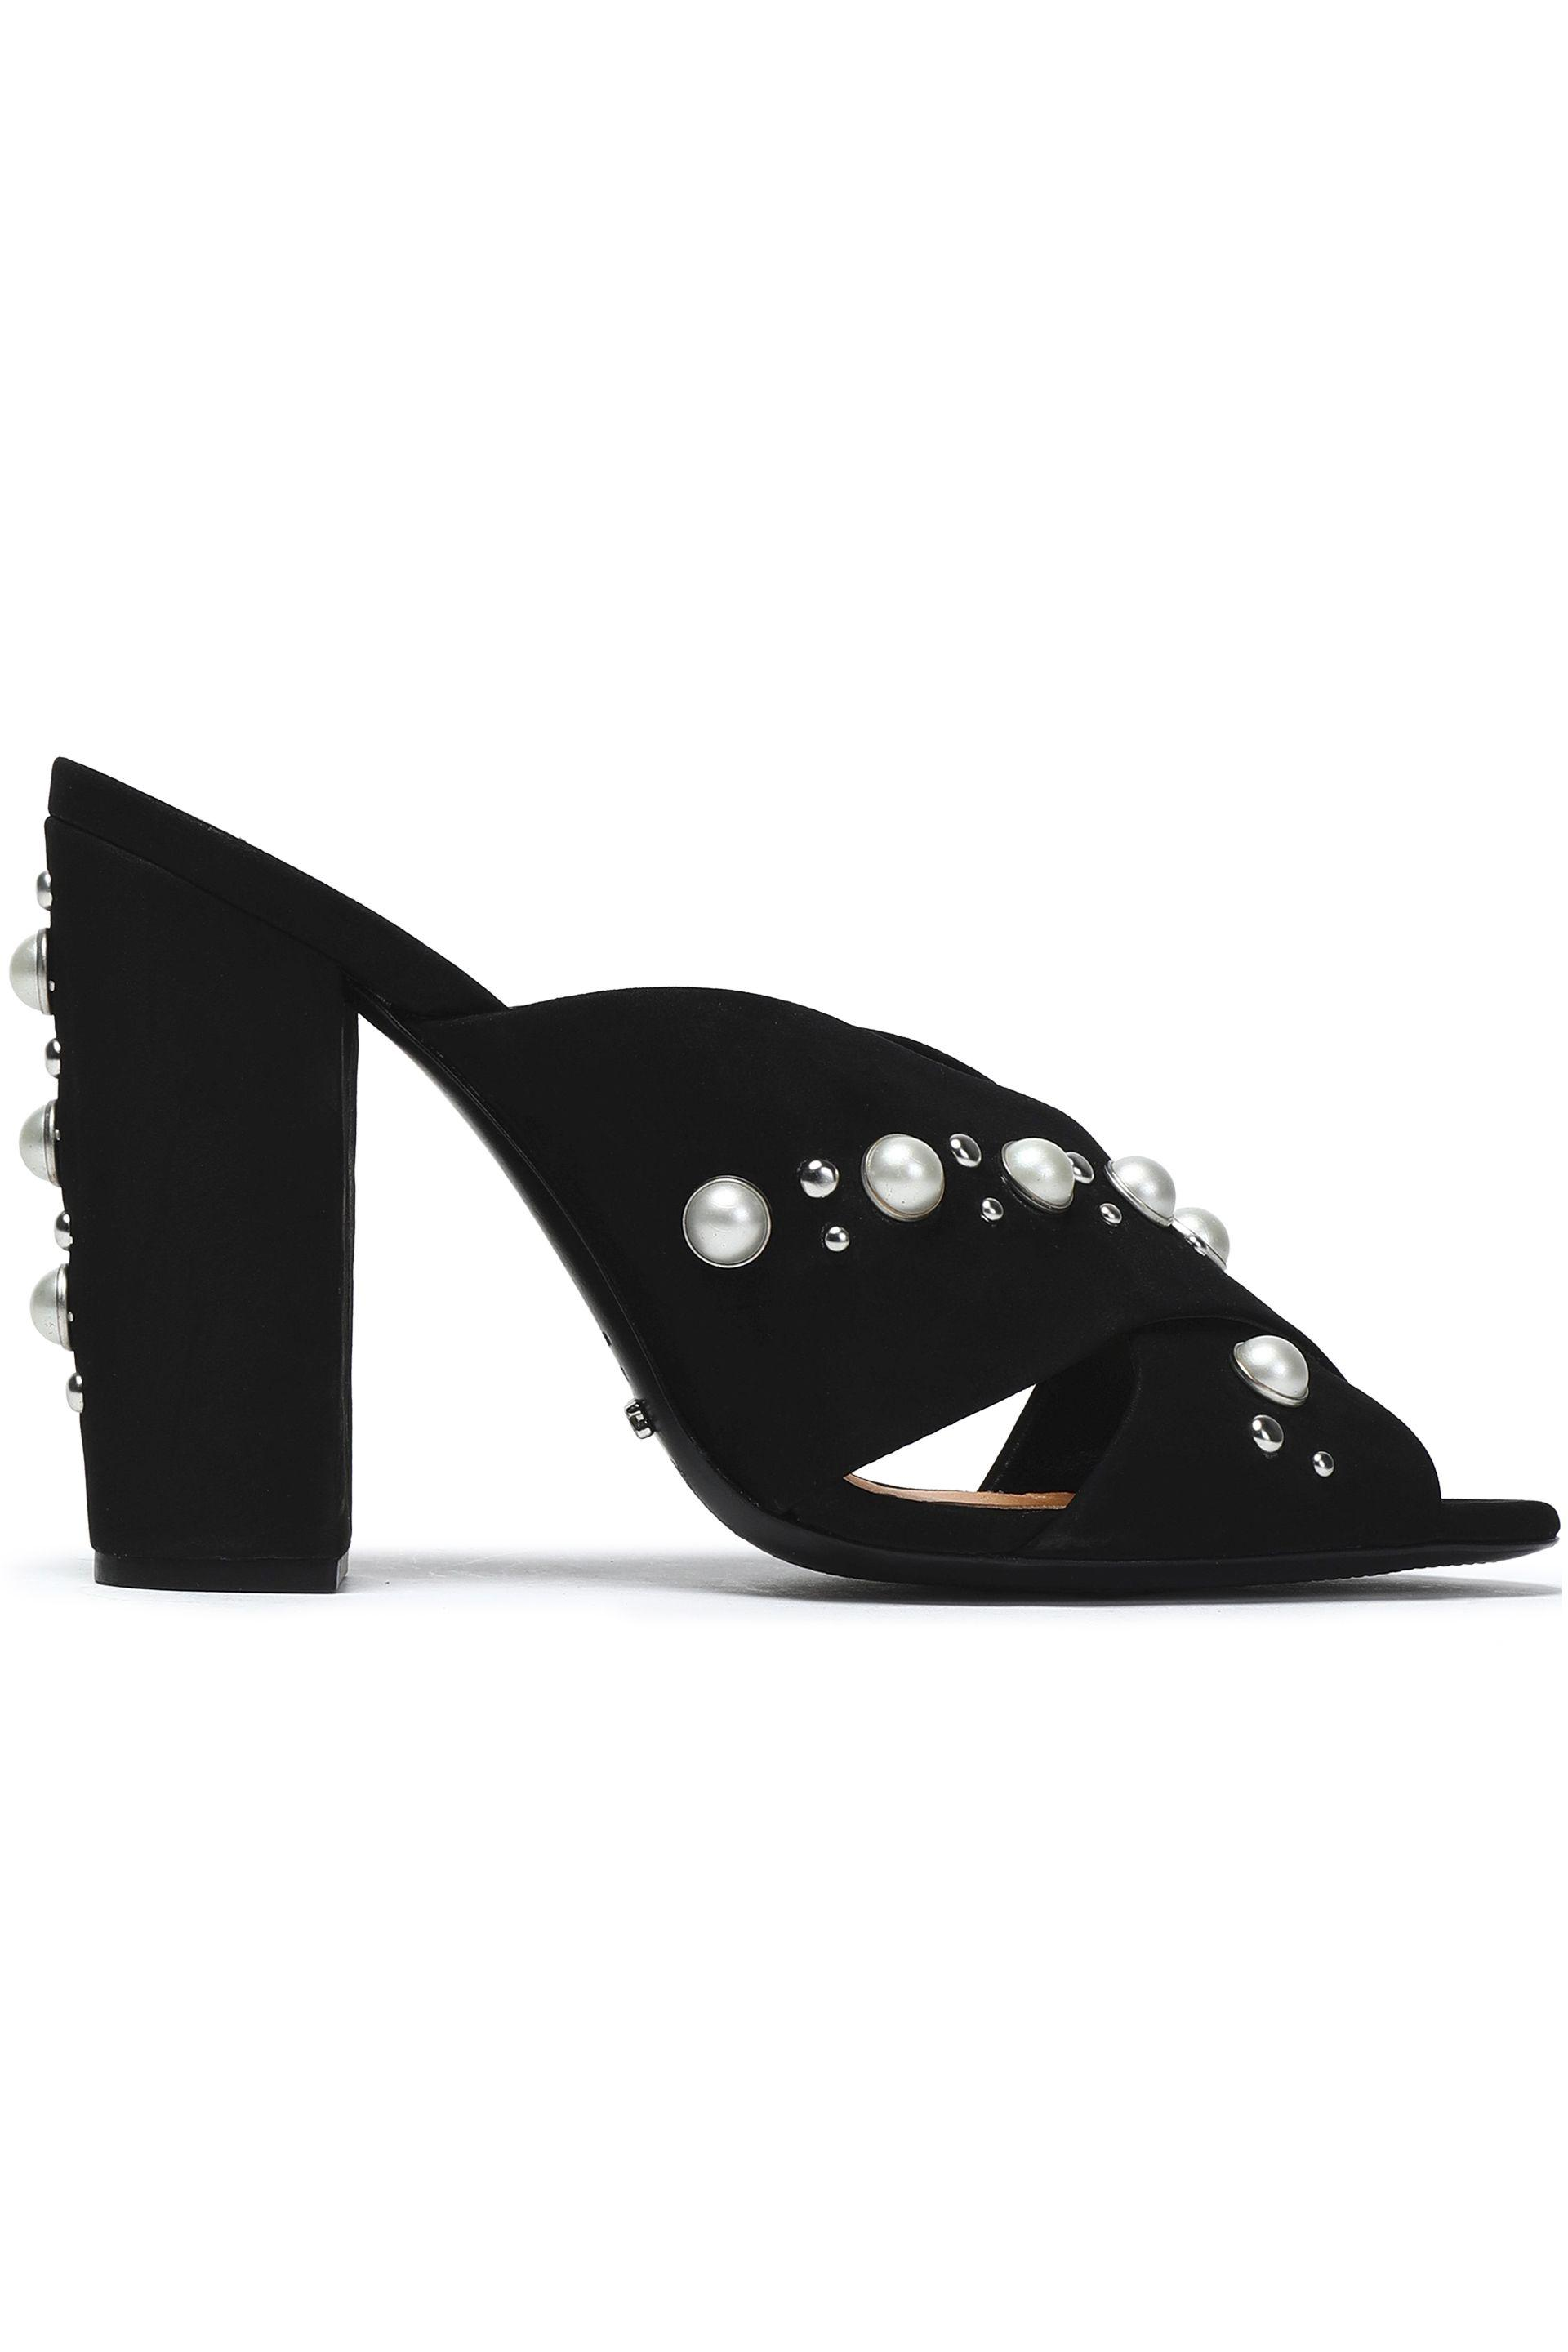 buy cheap top quality Schutz Stud-Embellished Velvet Sandals free shipping online outlet 2014 newest QxntqNoVtk